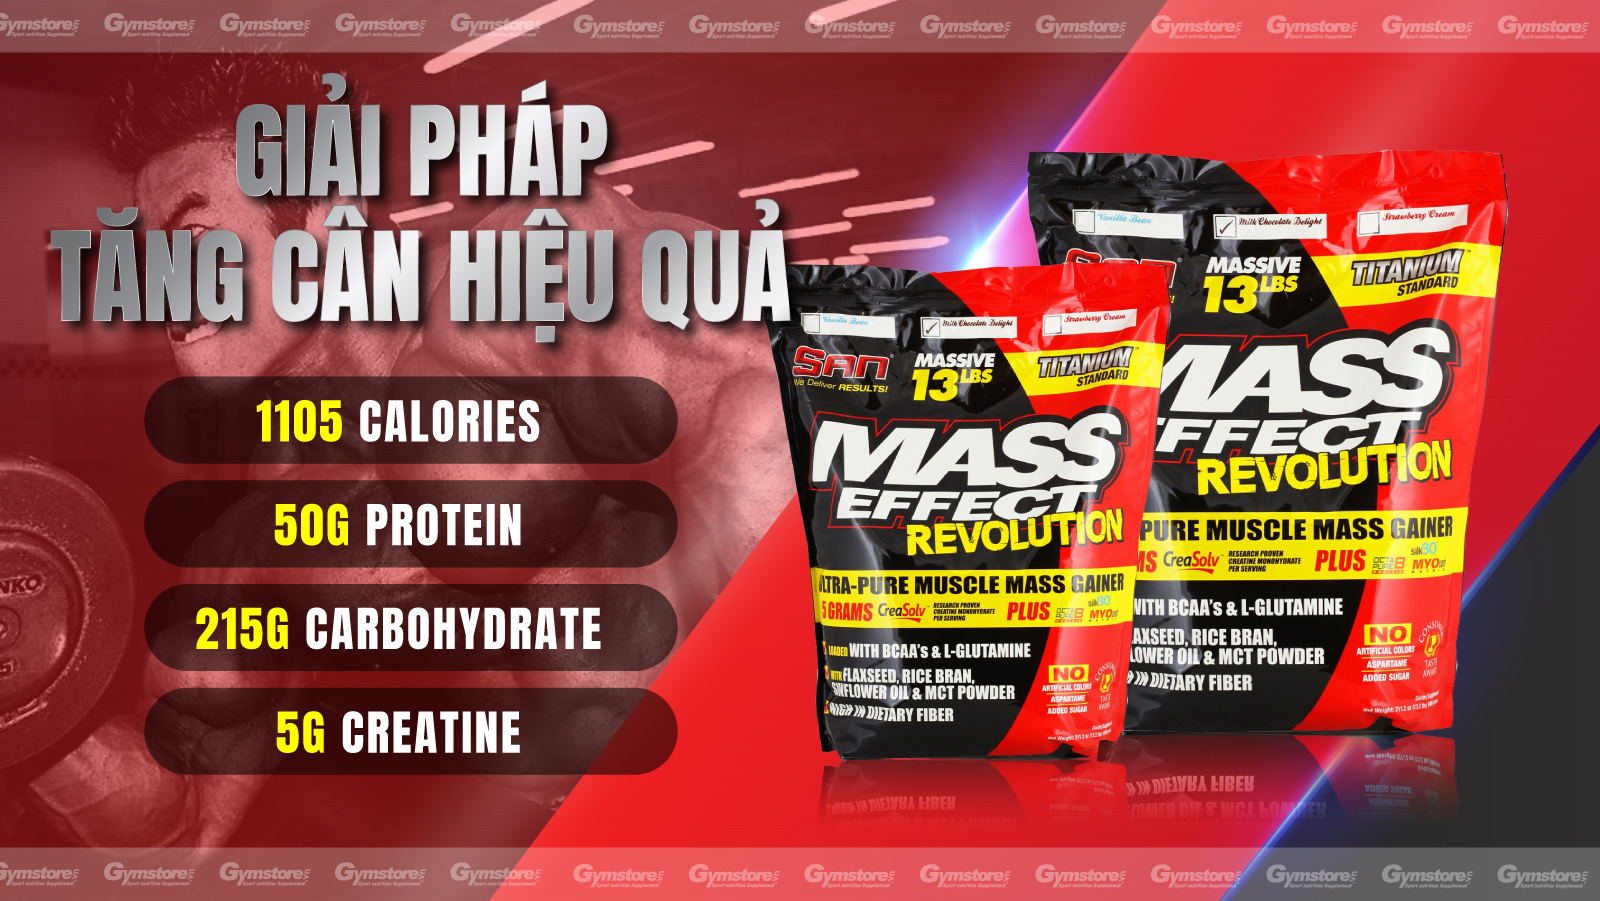 Mass-Effect-12lbs-tang-can-hieu-qua-gymstore